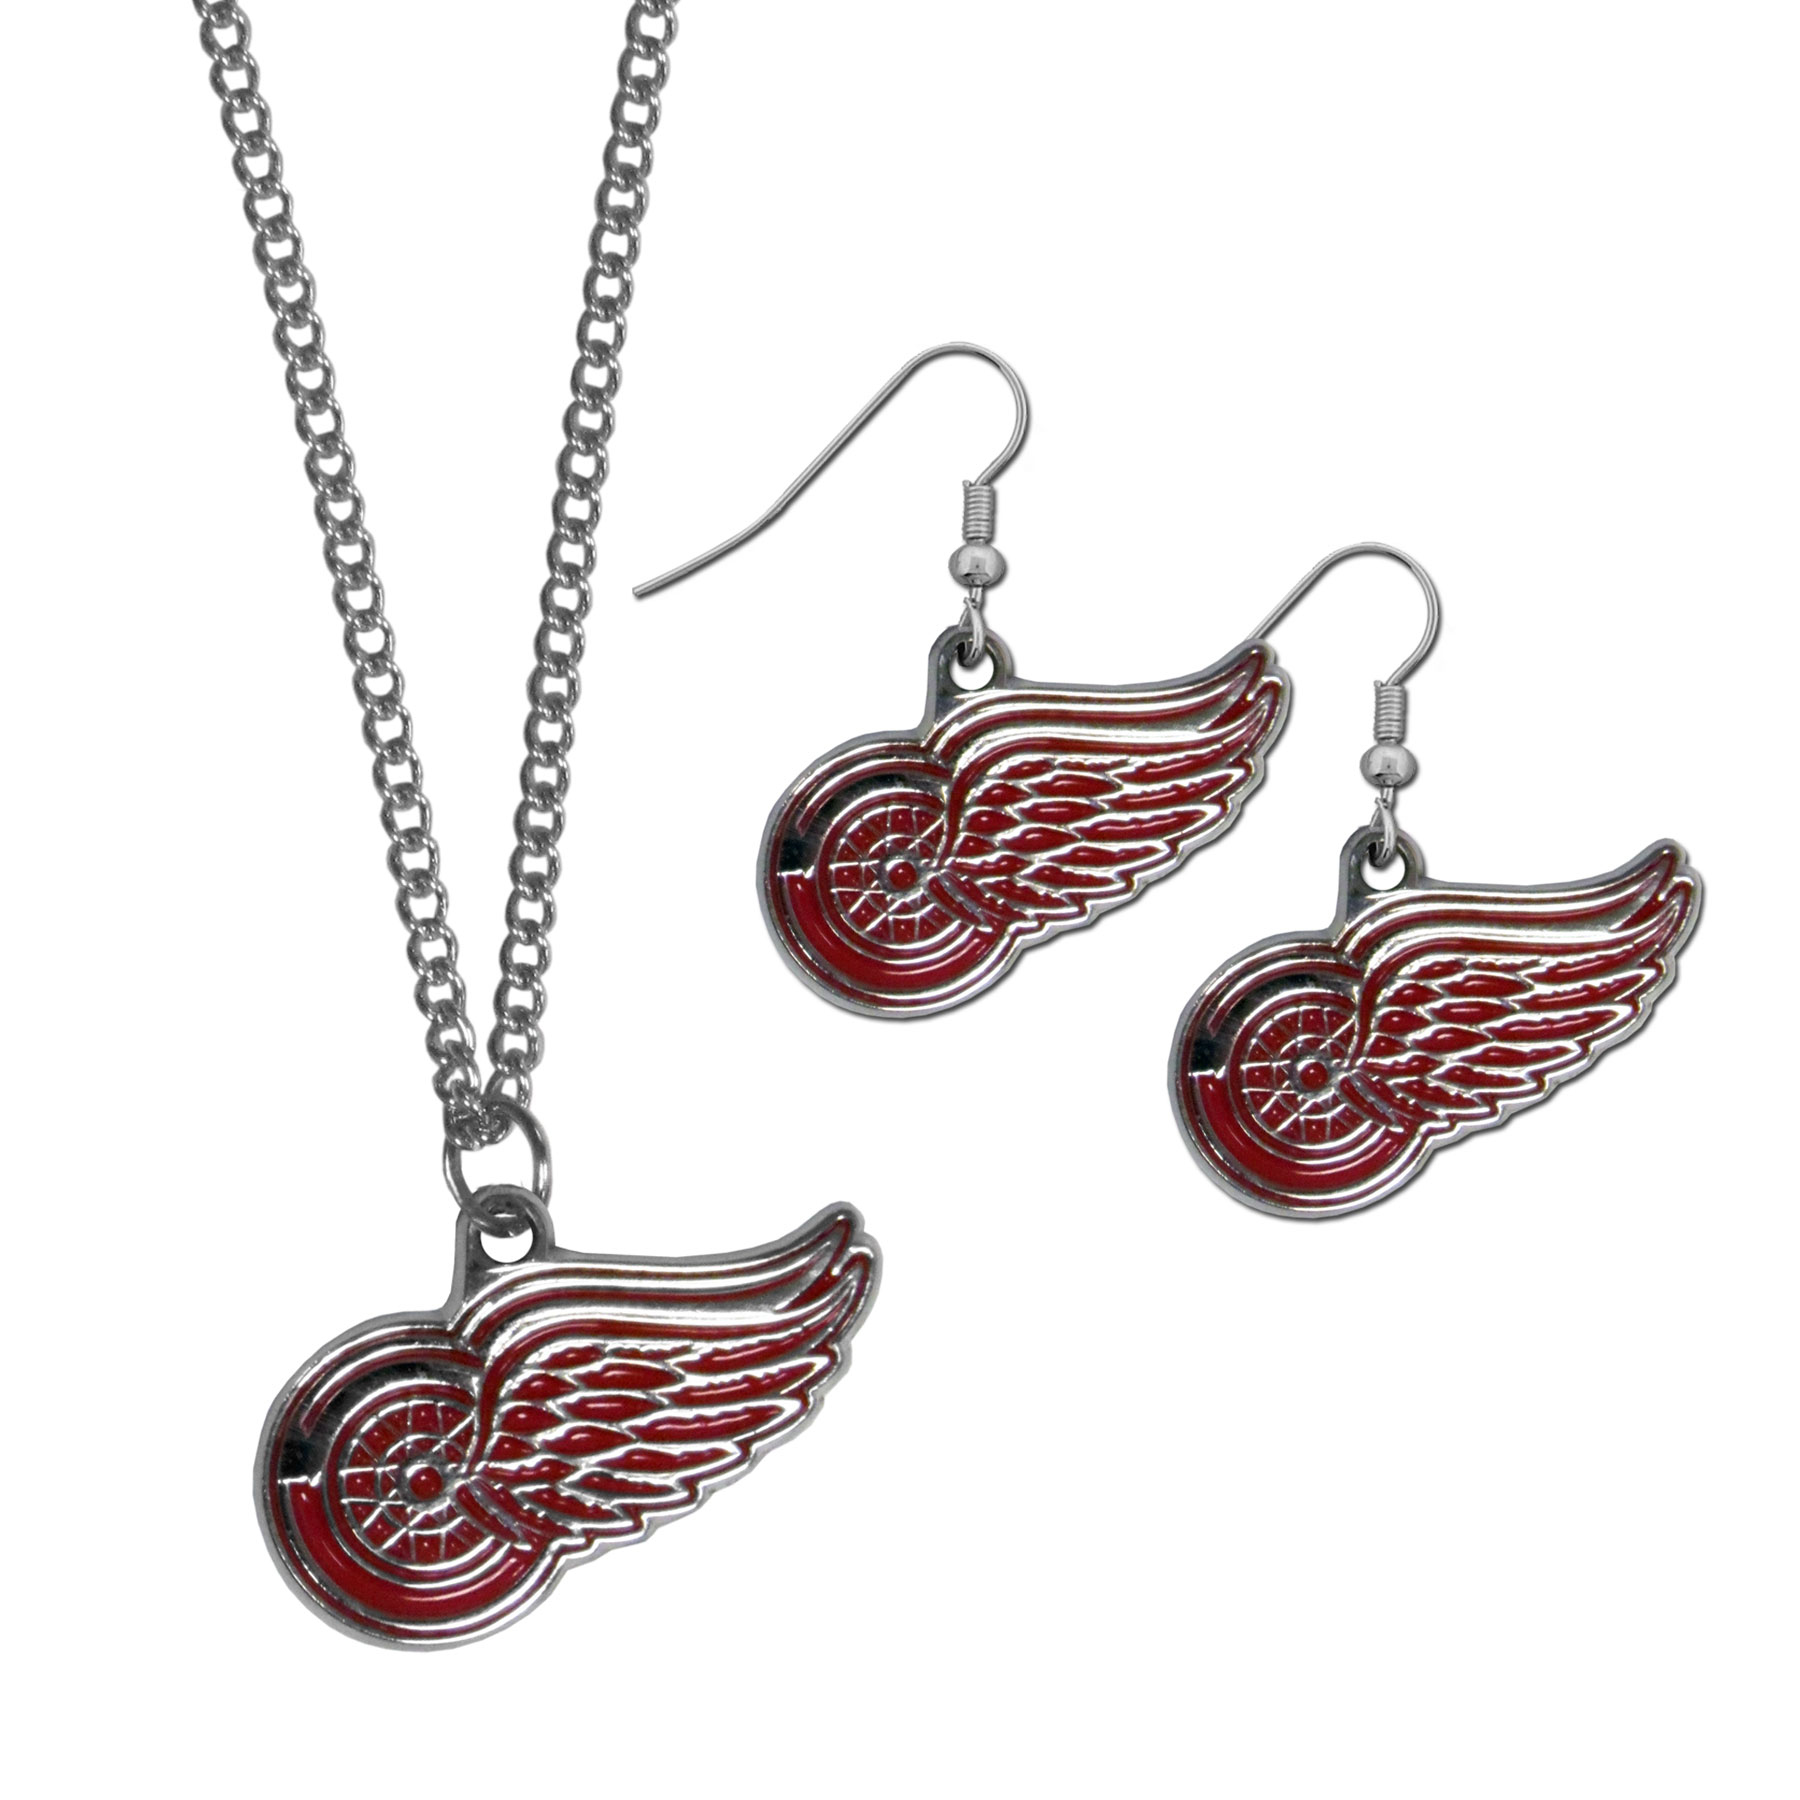 Detroit Red Wings® Dangle Earrings and Chain Necklace Set - This classic jewelry set contains are most popular Detroit Red Wings® dangle earrings and 22 inch chain necklace. The trendy, dangle earrings are lightweight and feature a fully cast metal team charm with enameled team colors. The matching necklace completes this fashion forward combo and is a spirited set that is perfect for game day but nice enough for everyday.